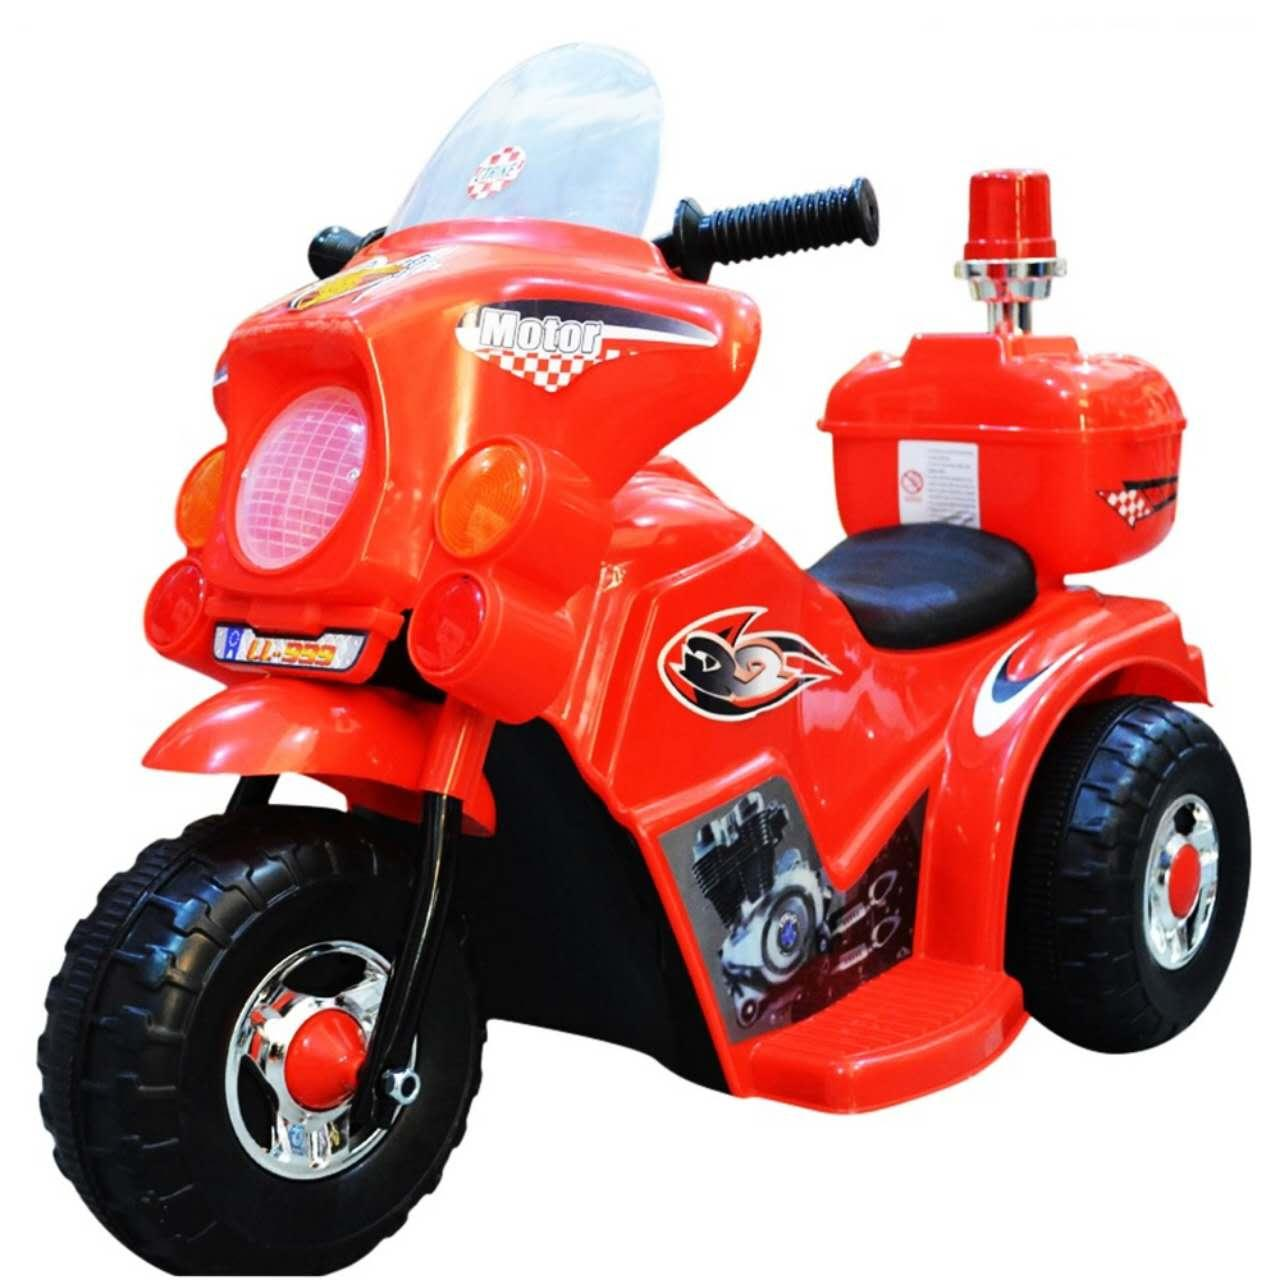 Toy Cars For Sale Play Vehicles Online Brands Prices Reviews In Remote Control Car Circuit Best Kids Toys Ll999 Rechargeable Motor Bike Red